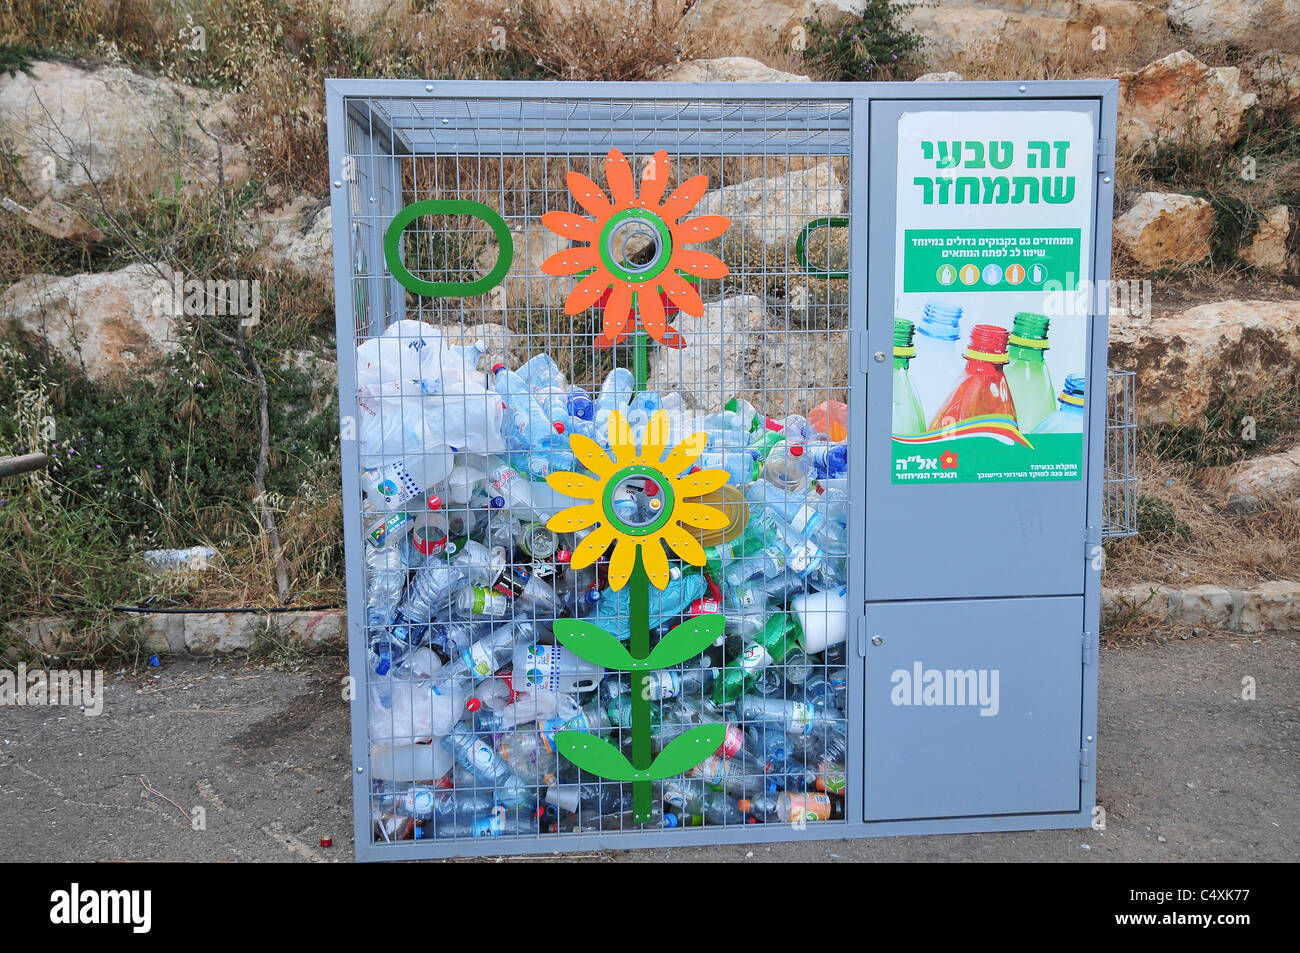 Plastic Bottle Recycling Part - 41: Plastic Bottle Recycling Bin Photographed In Israel